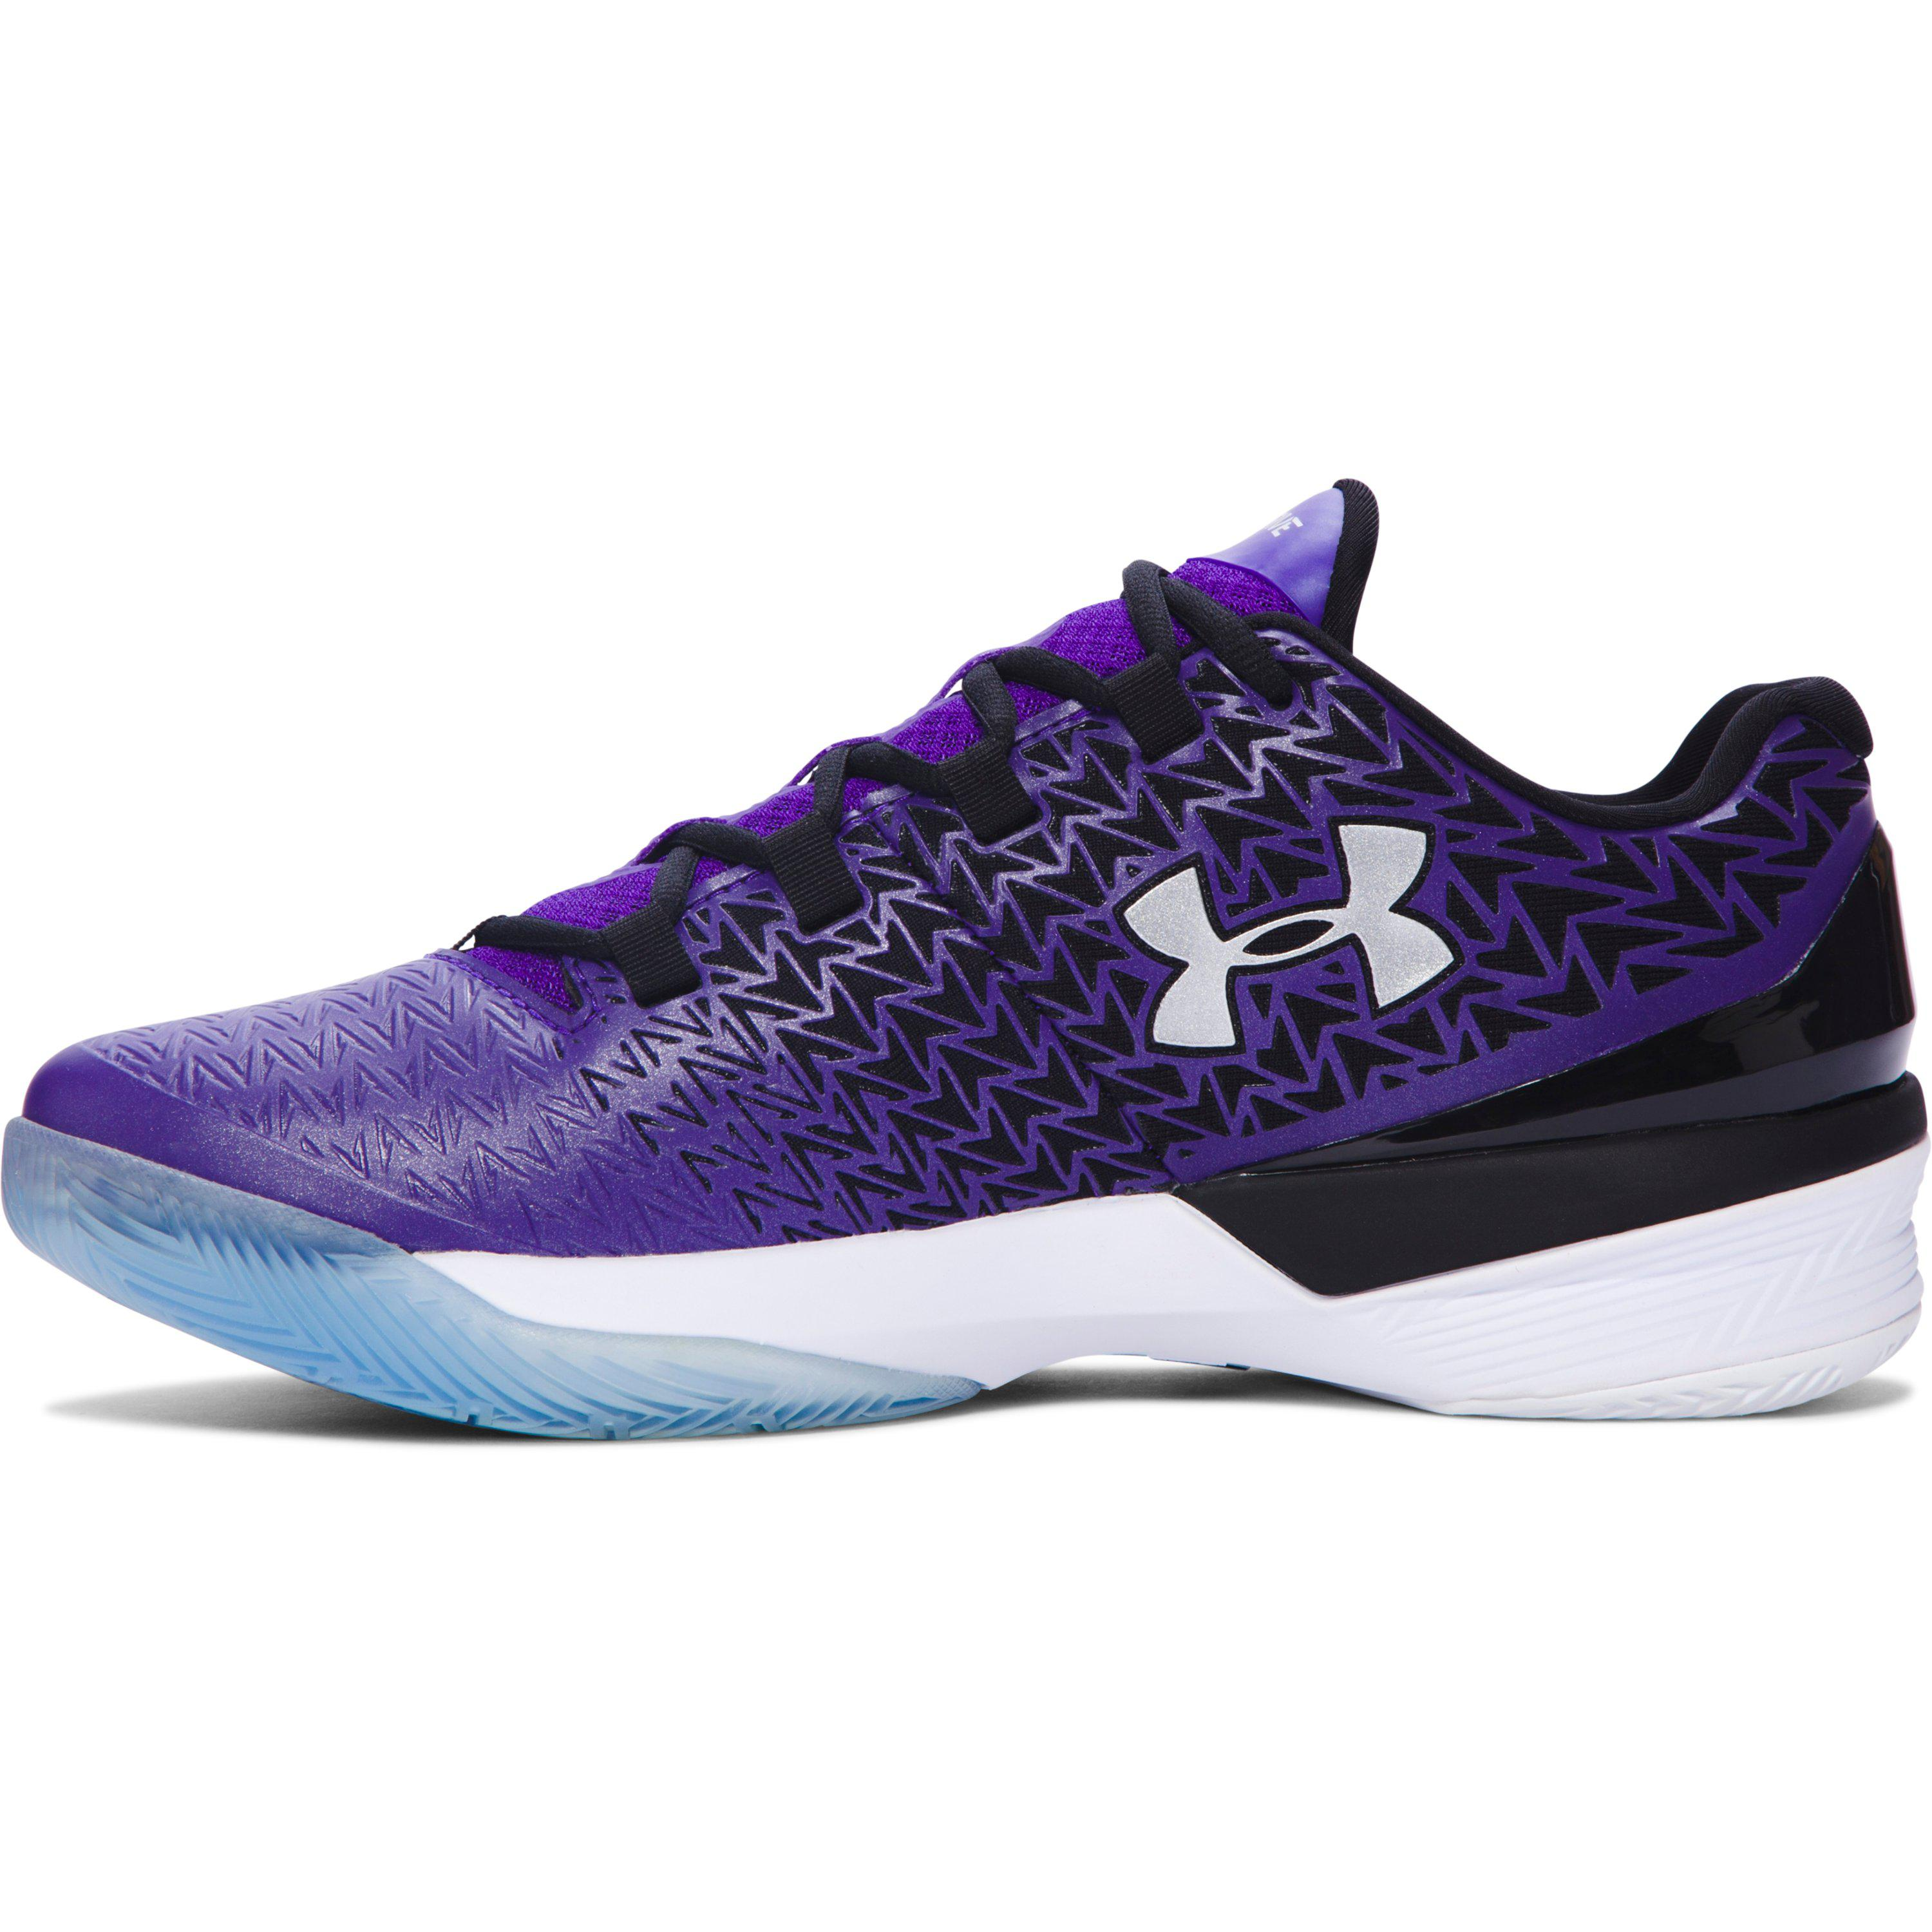 8e1c71119eb1 ... hot lyst under armour mens ua clutchfit drive 3 low basketball shoes  4d768 323c4